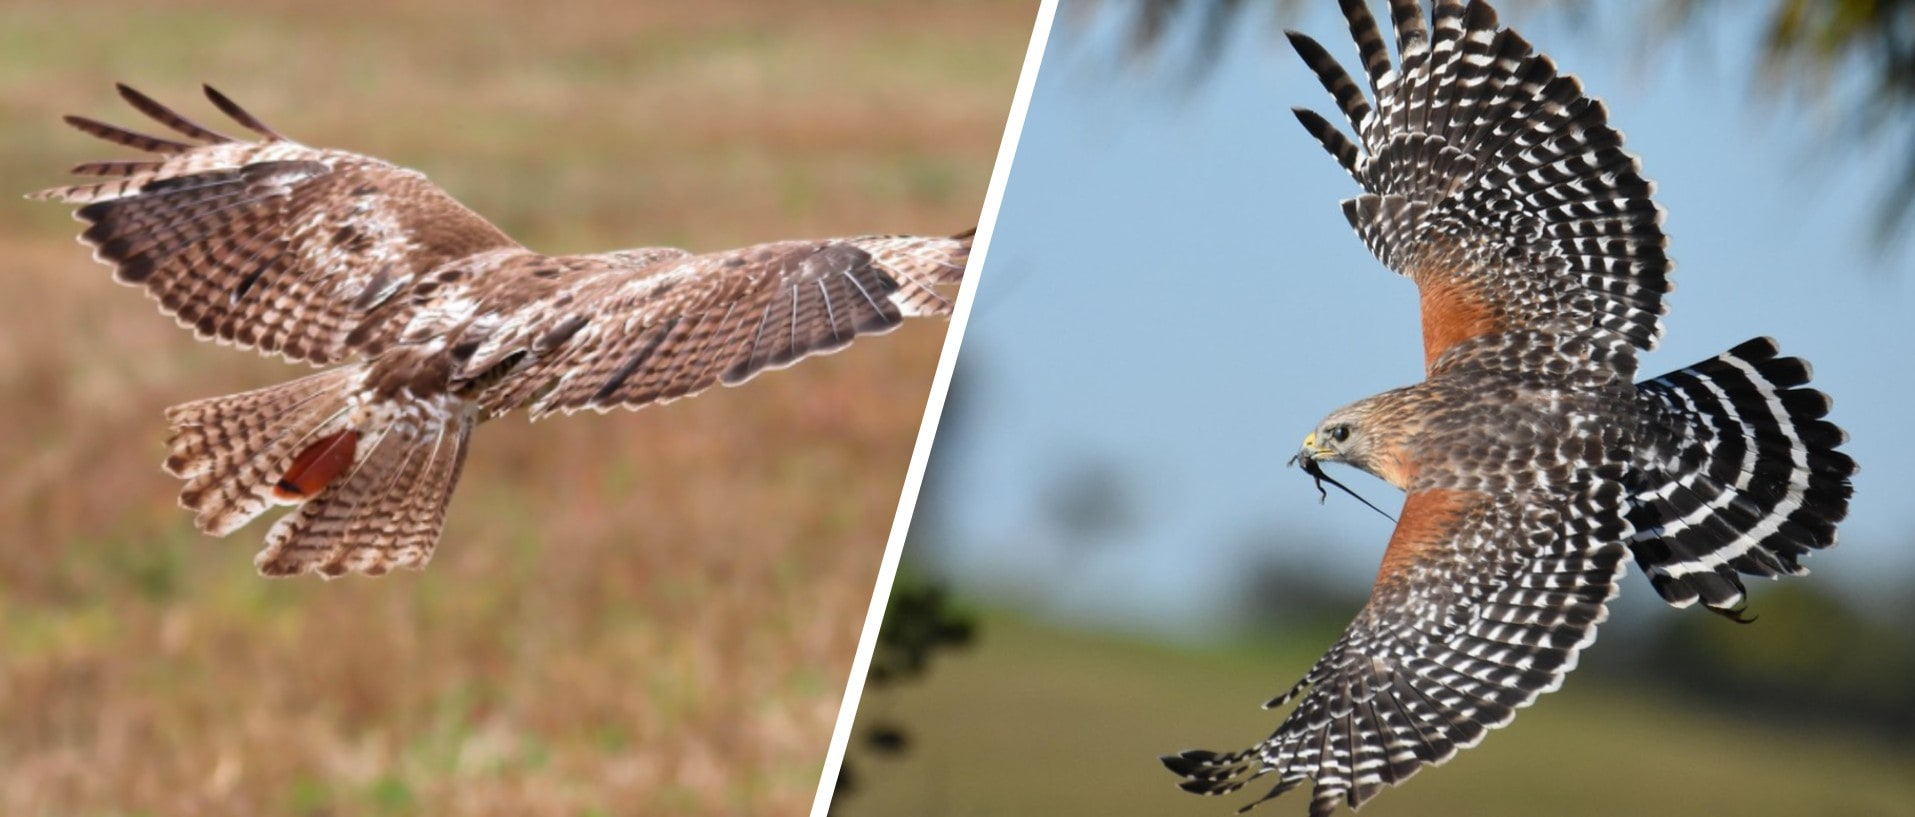 red tailed vs red shouldered hawks